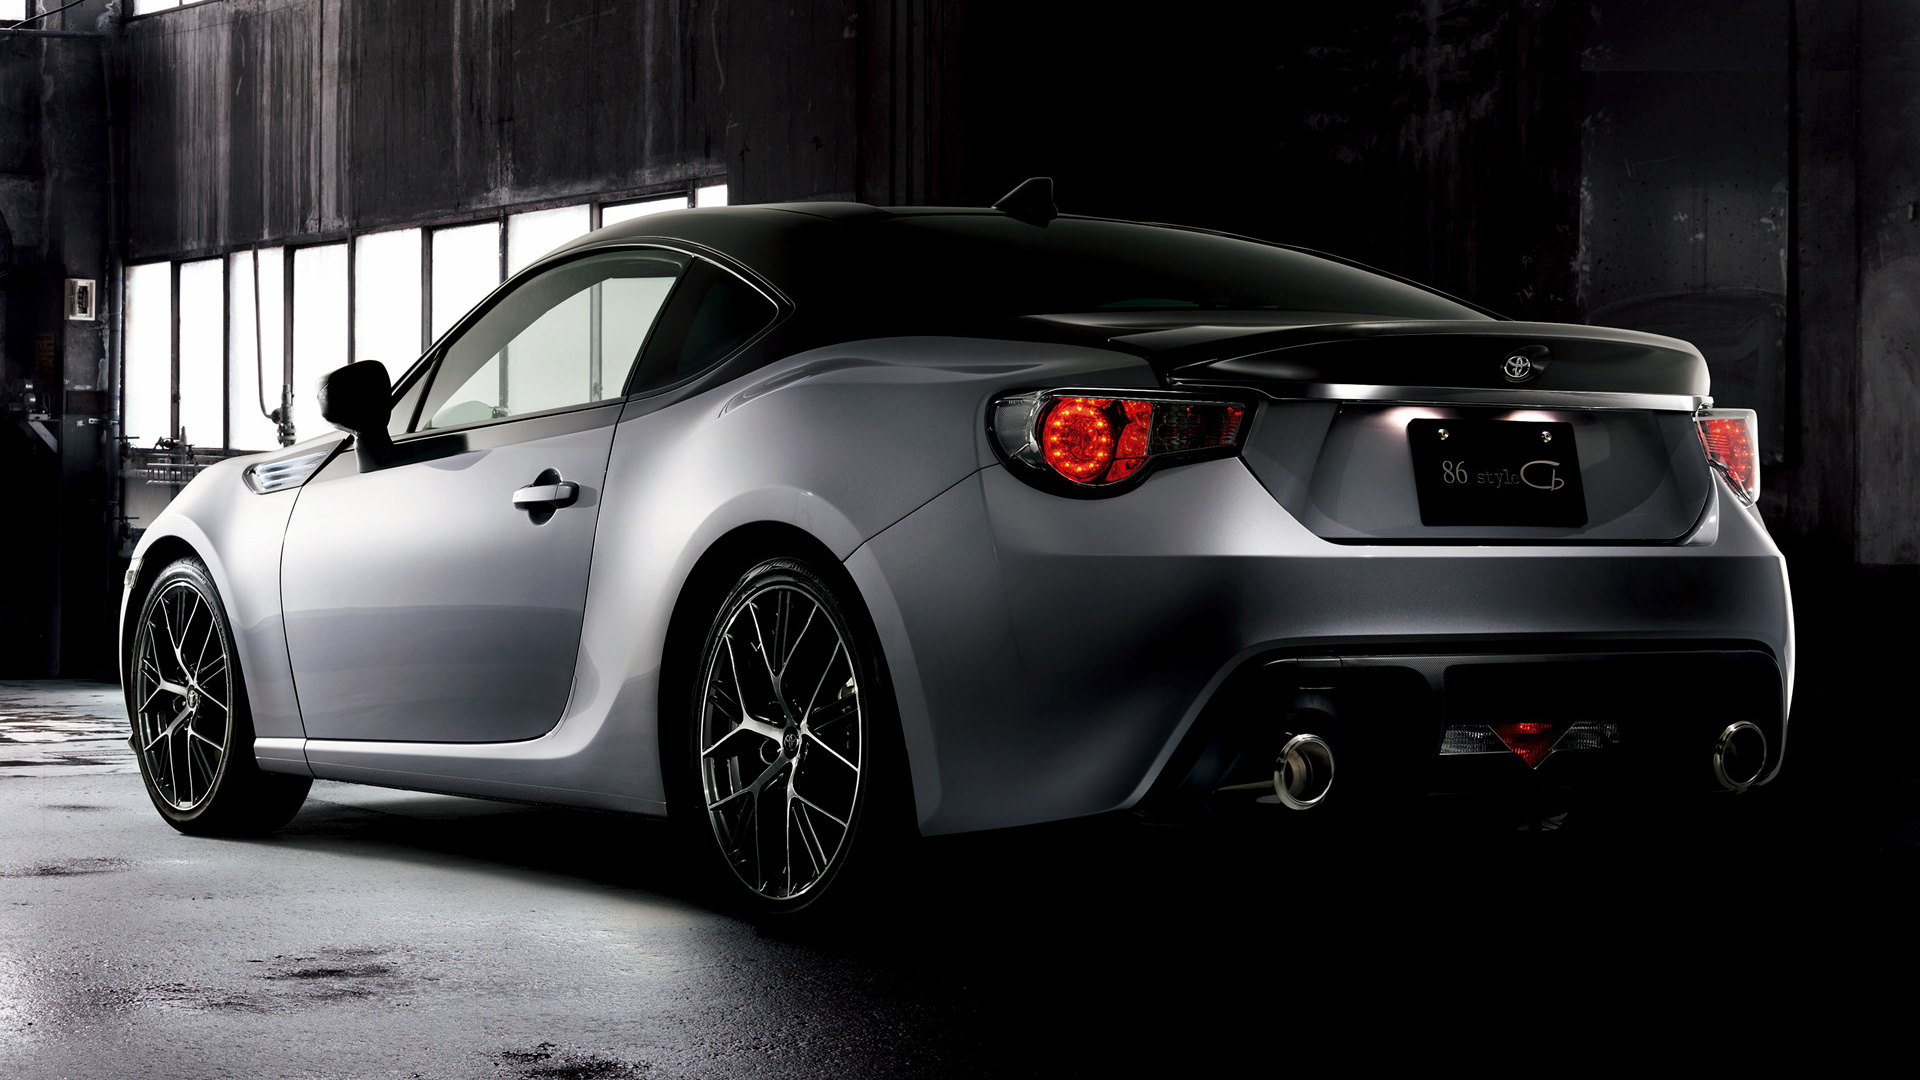 Smart Car Wallpaper Toyota 86 Style Cb 2015 Wallpapers And Hd Images Car Pixel